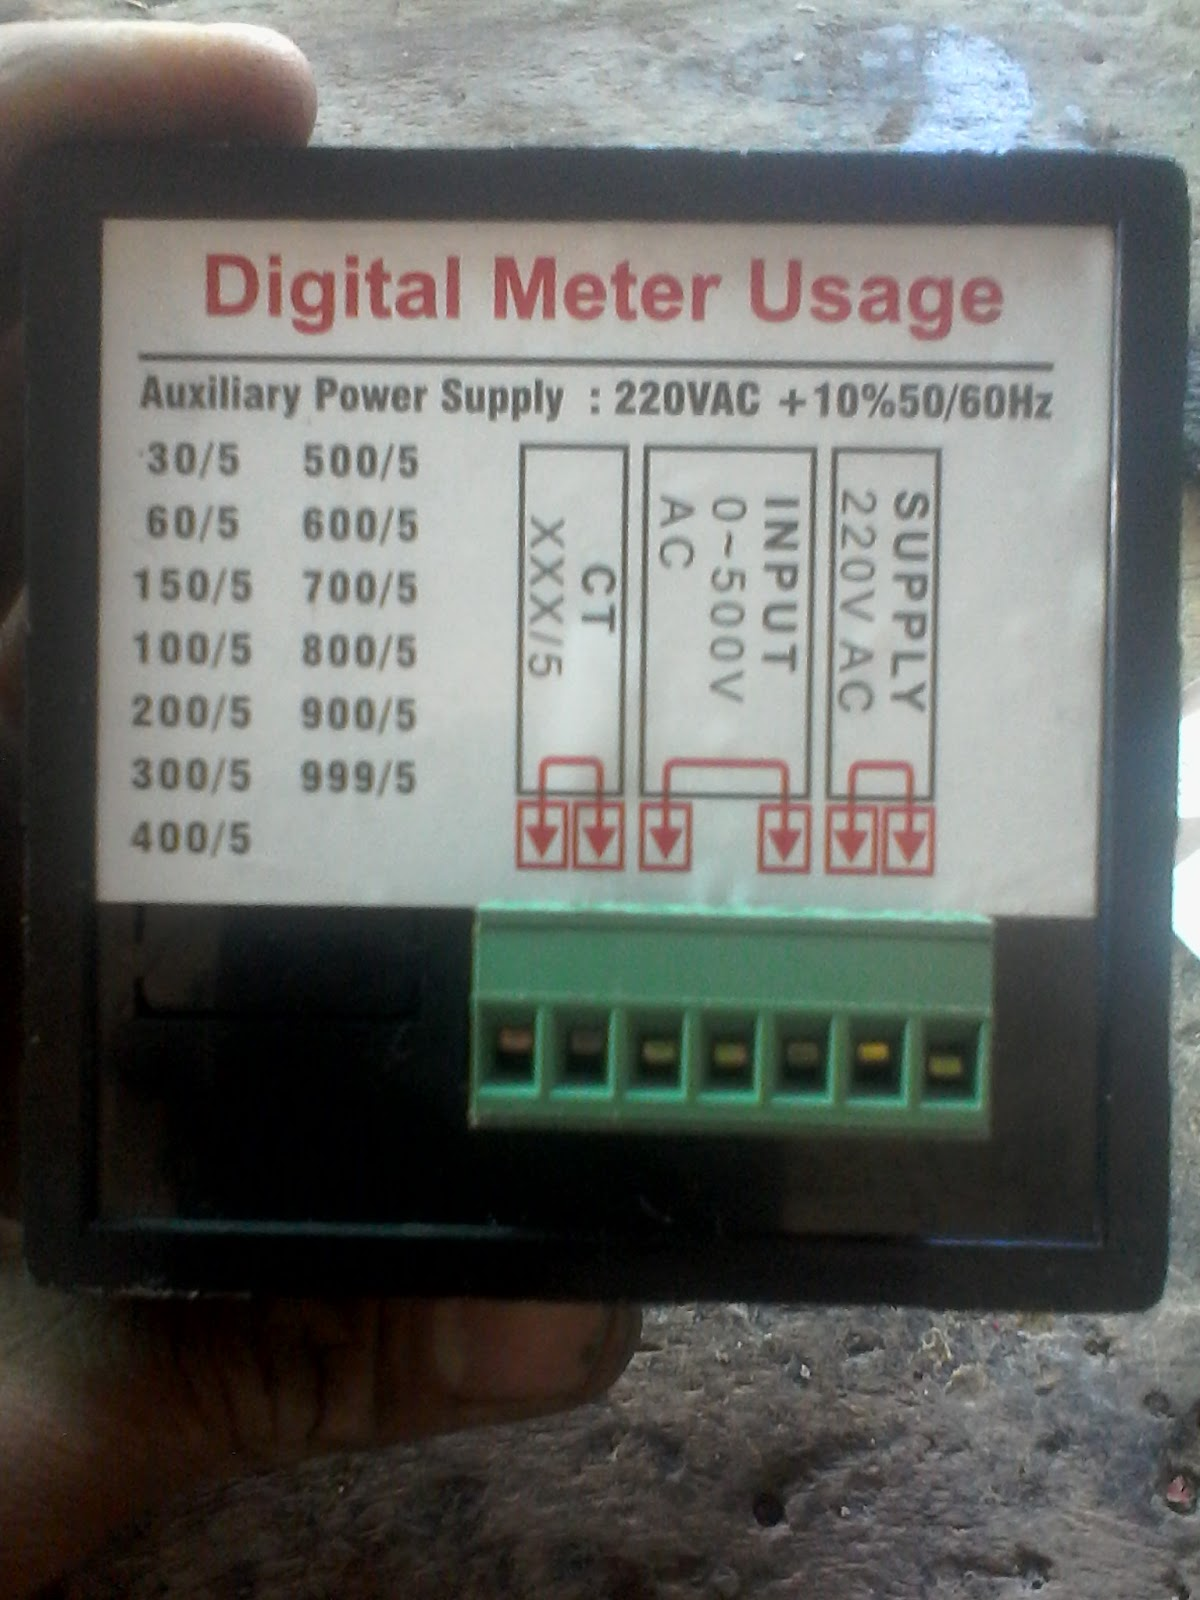 Digital Electric Meter Wiring Diagram Microsoft Exchange Topology Multi Voltmeter Ammeter Hz With